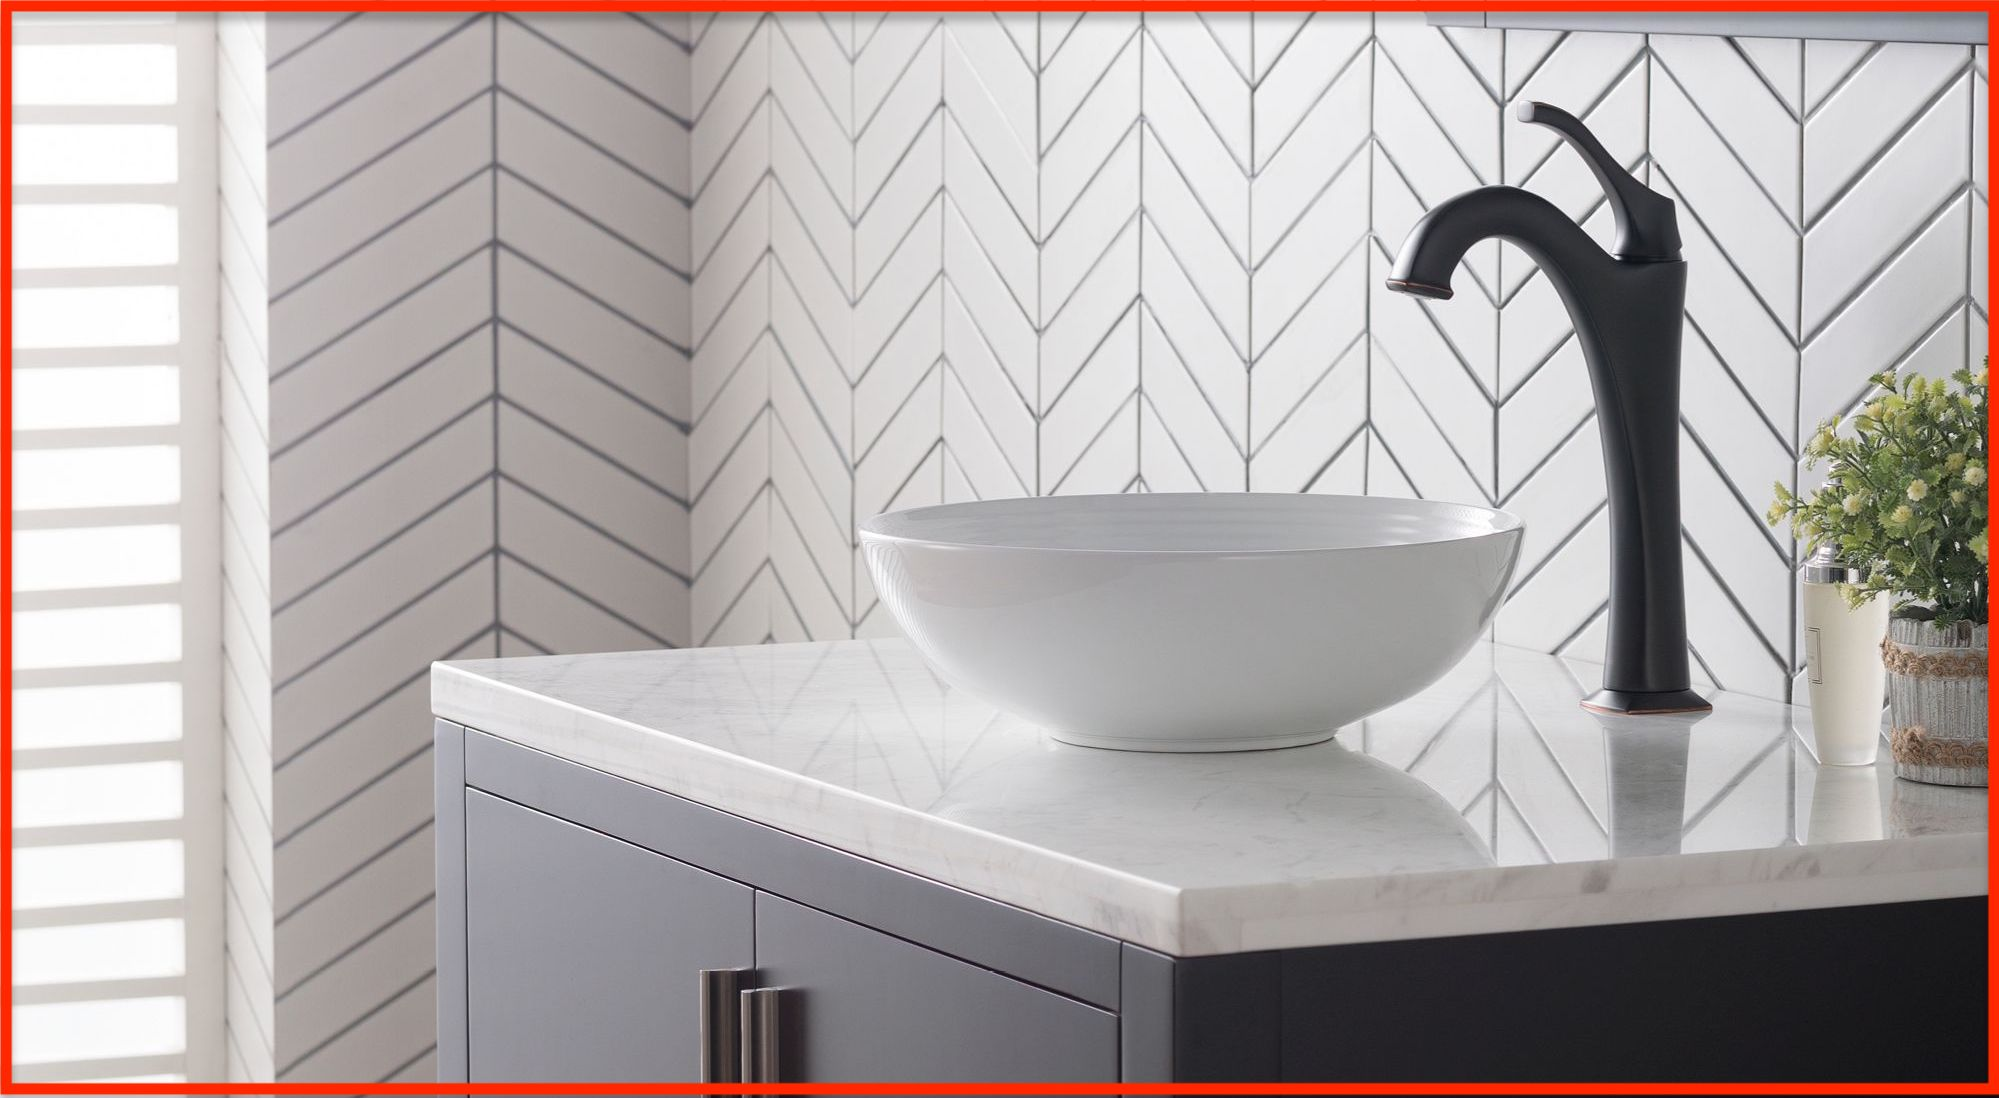 Creating a Timeless Bathroom Décor with Simple Features